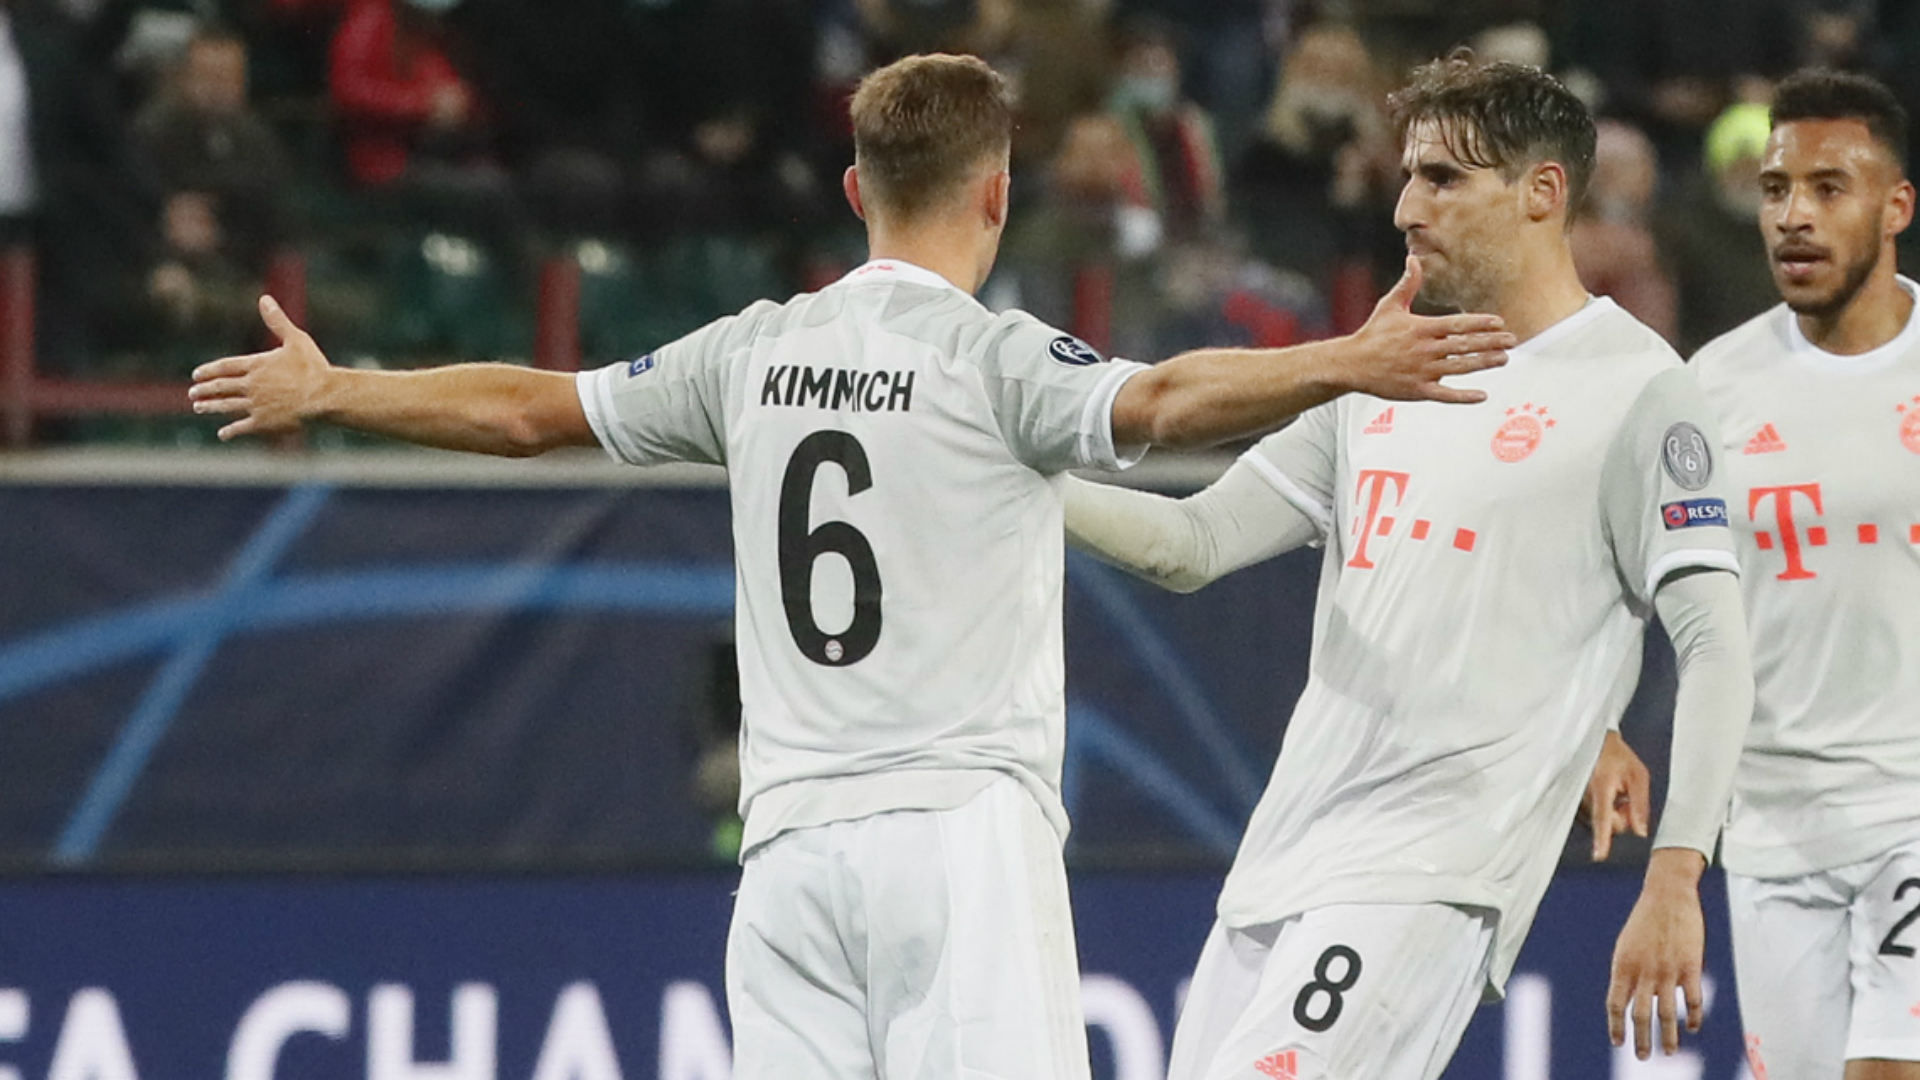 Lokomotiv Moscow 1-2 Bayern Munich: Kimmich spares defending champions' blushes with late winner